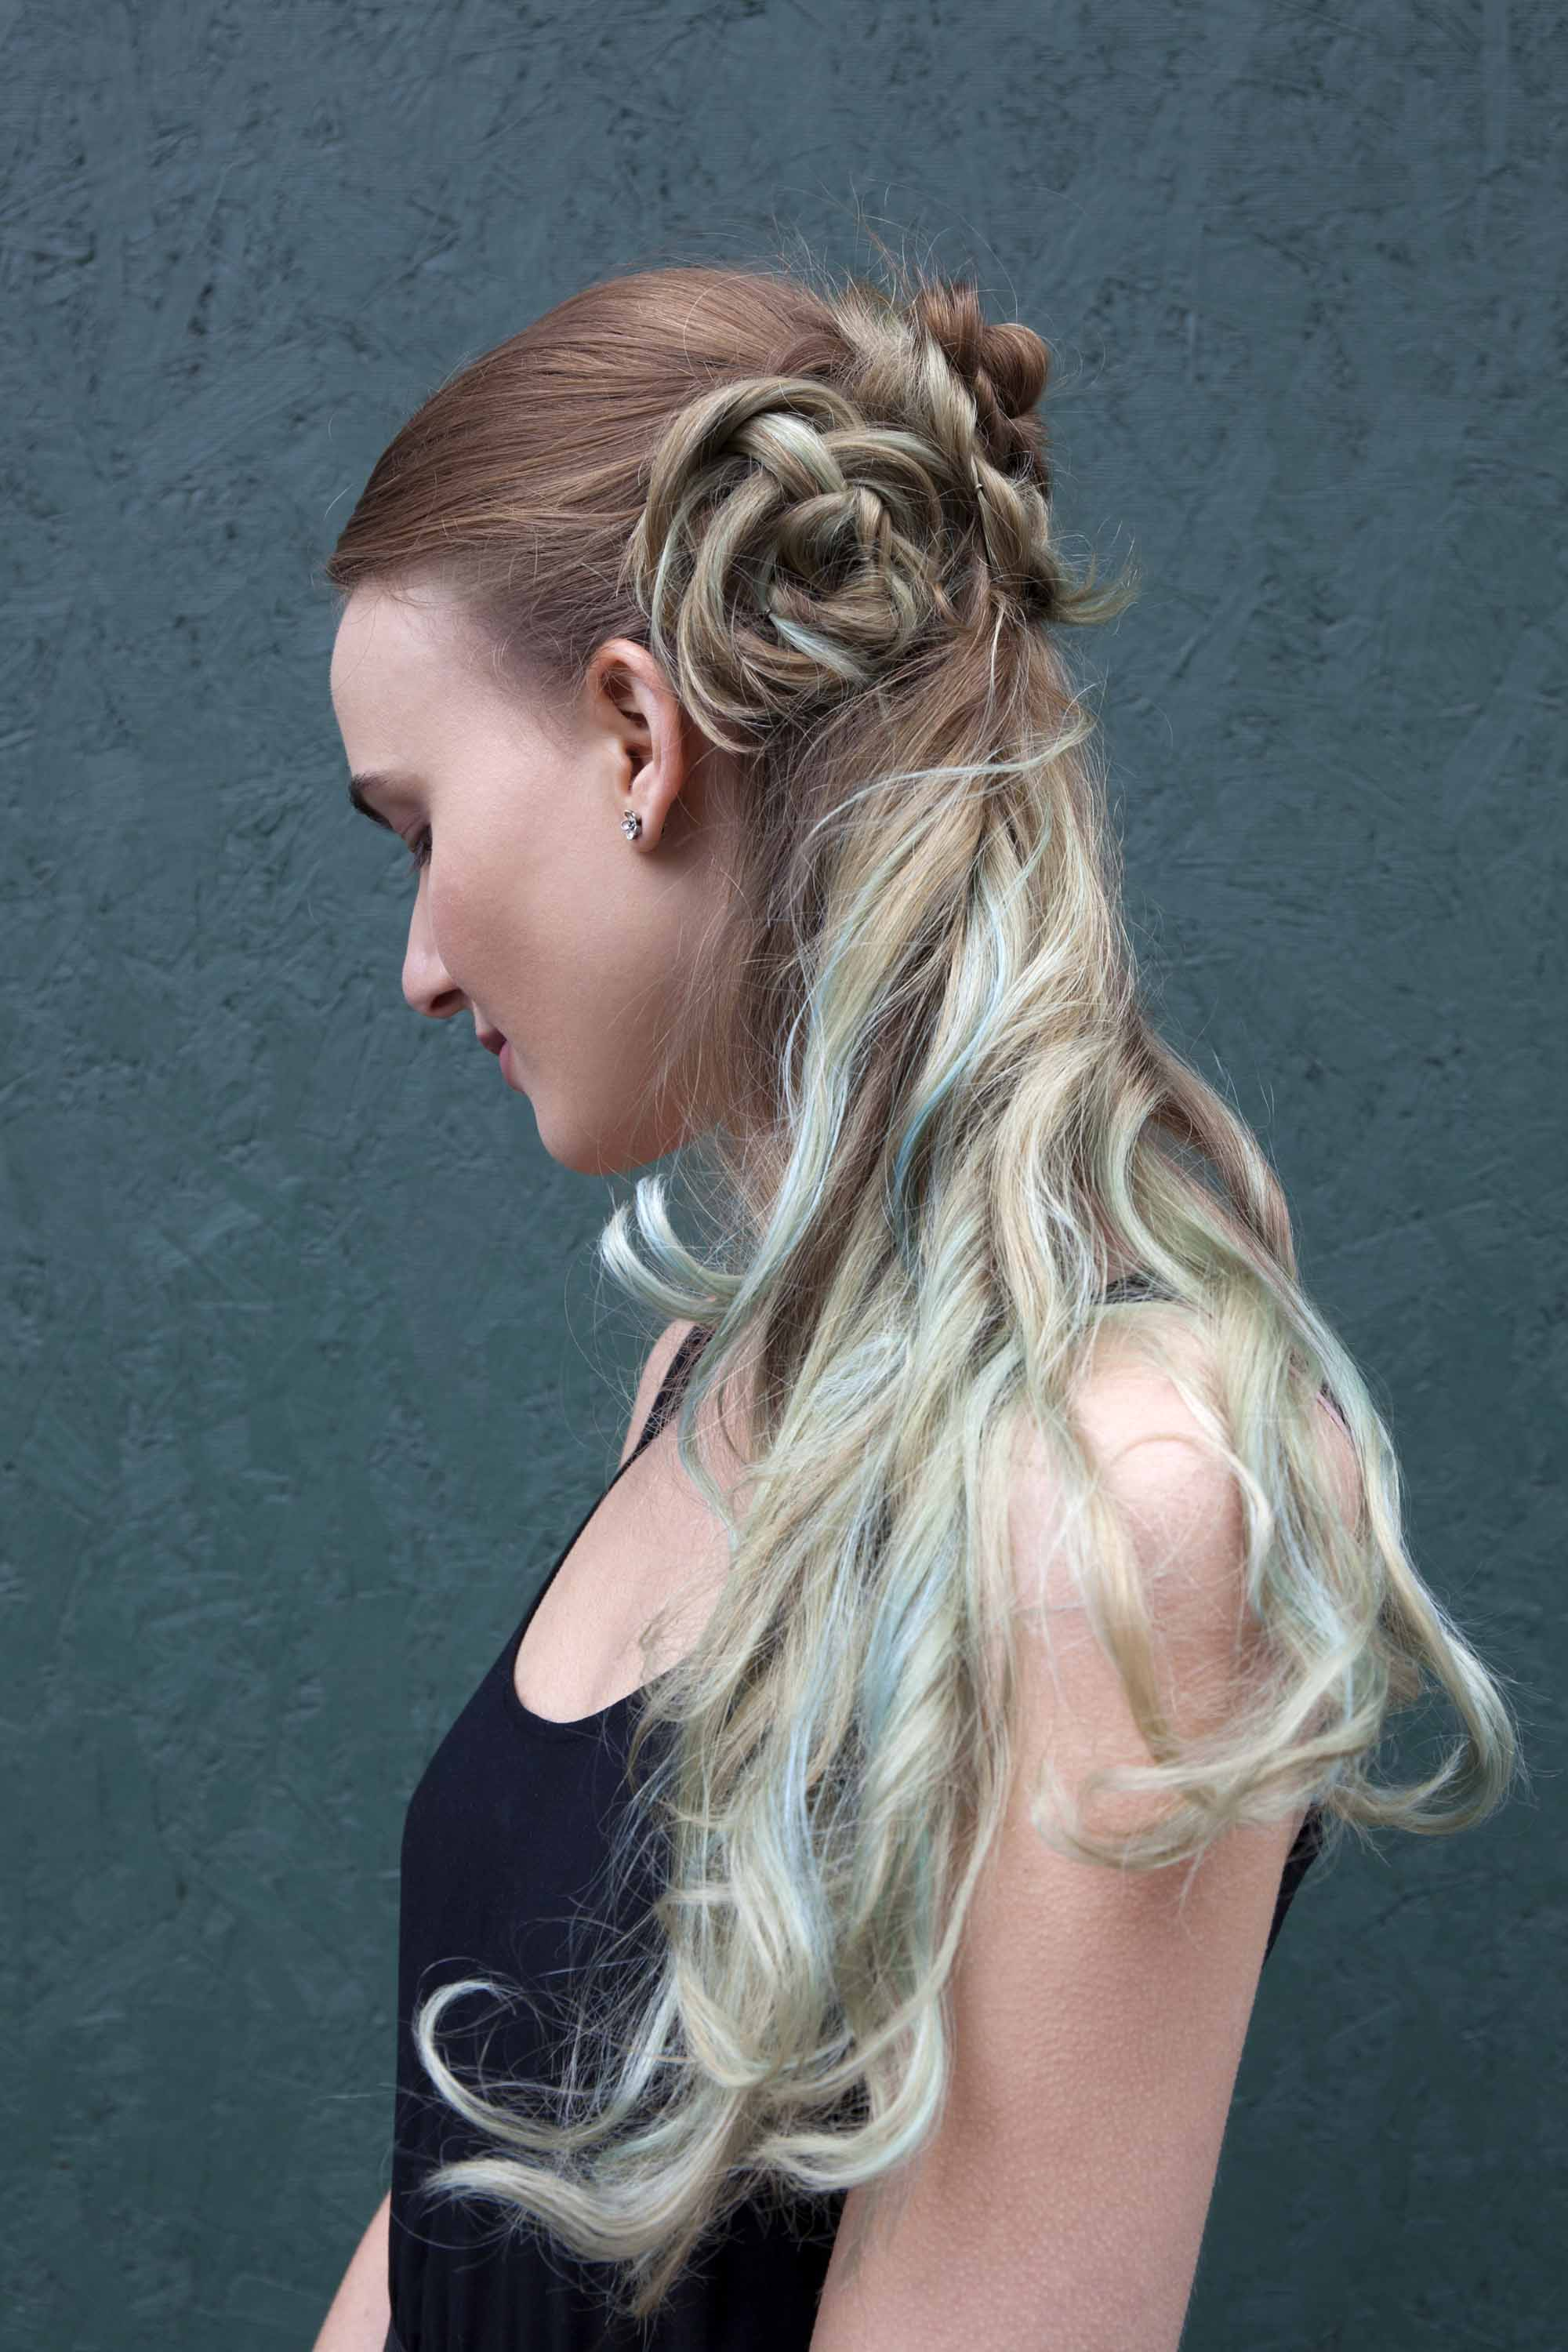 Simple Updo Ideas For Prom 16 Cute Looks To Totally DIY